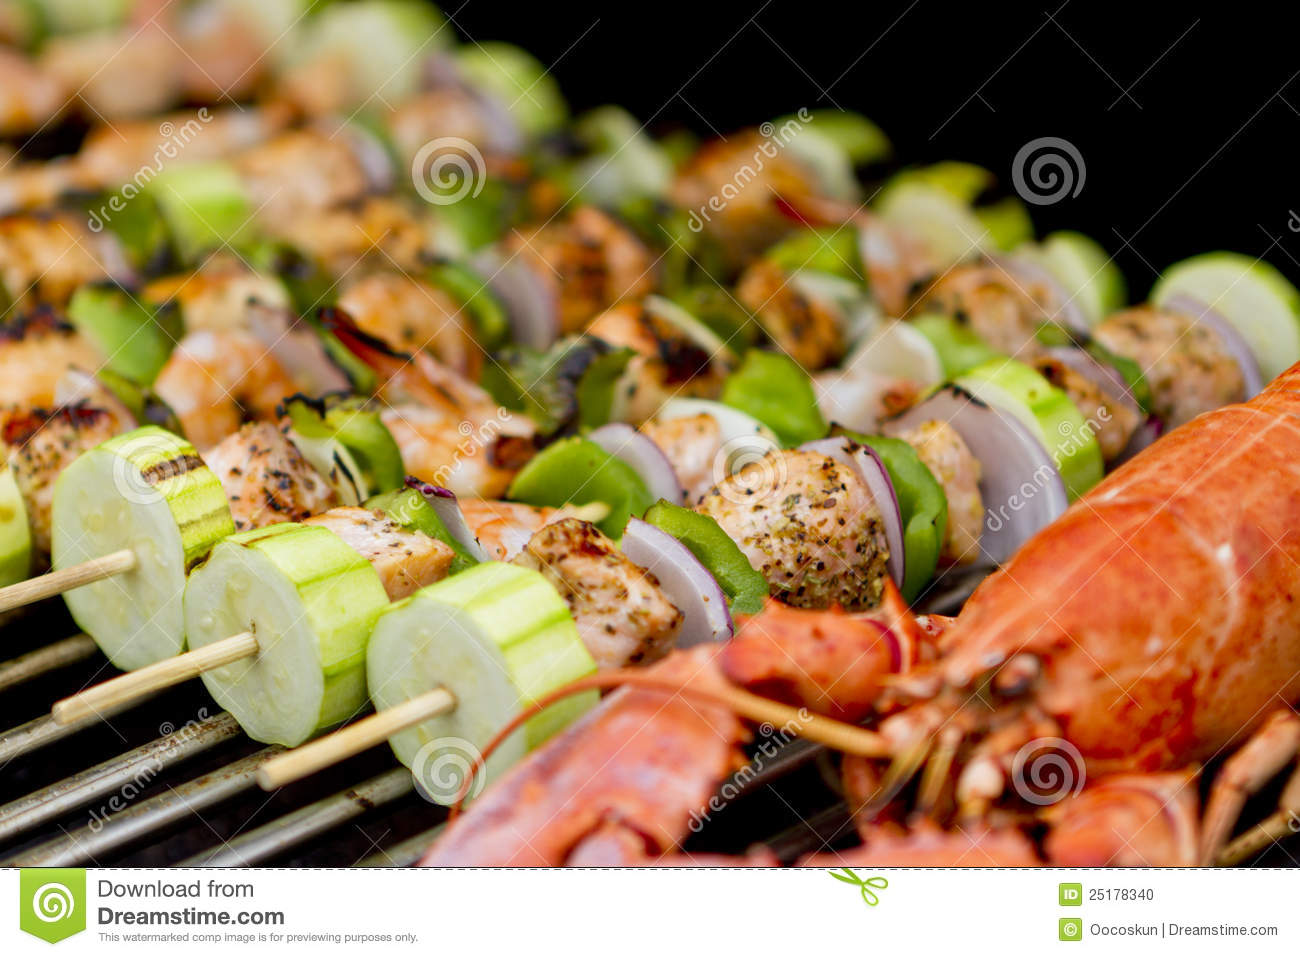 Salmon Skewers And Lobster Stock Photo - Image: 25178340